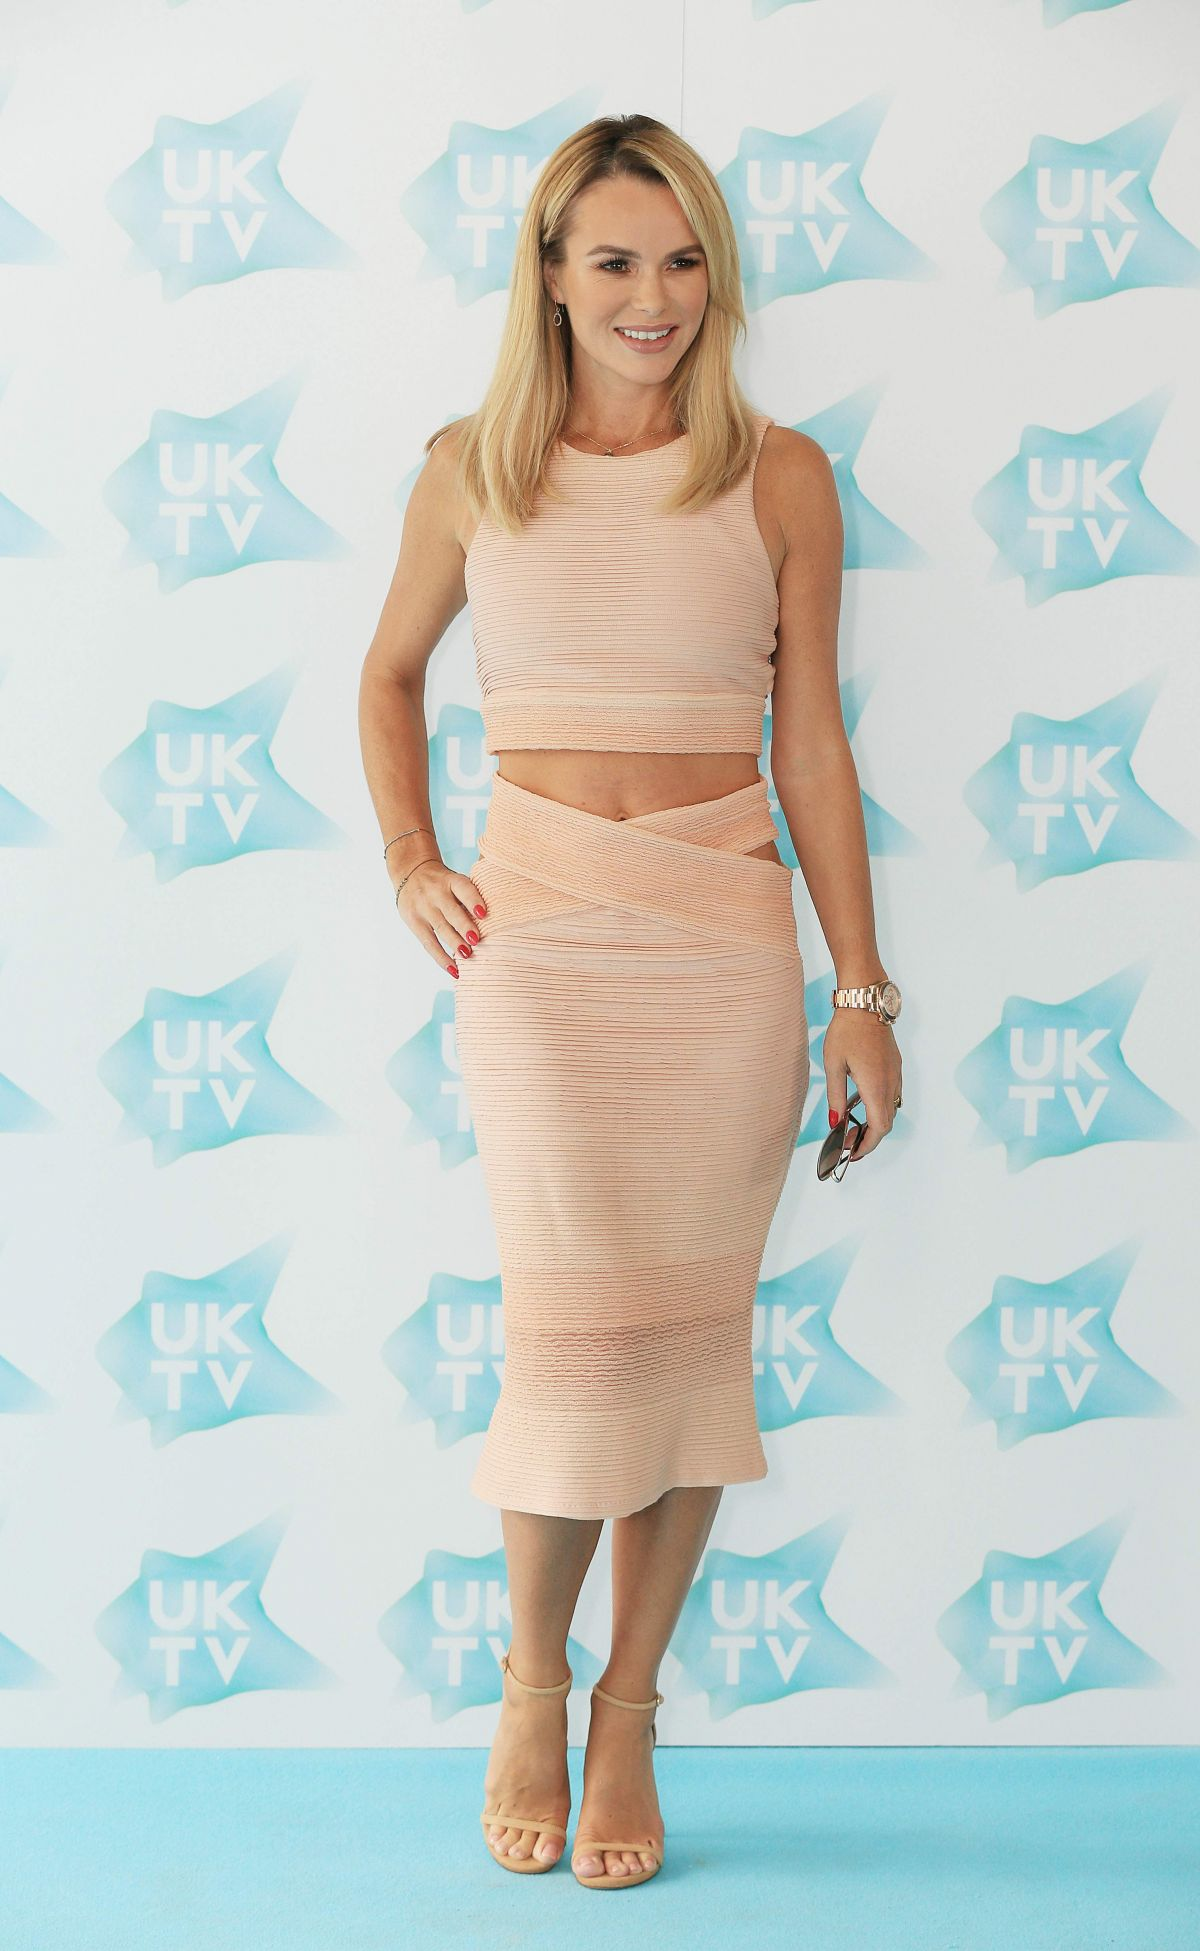 Amanda Holden At Uktv Live New Season Launch London